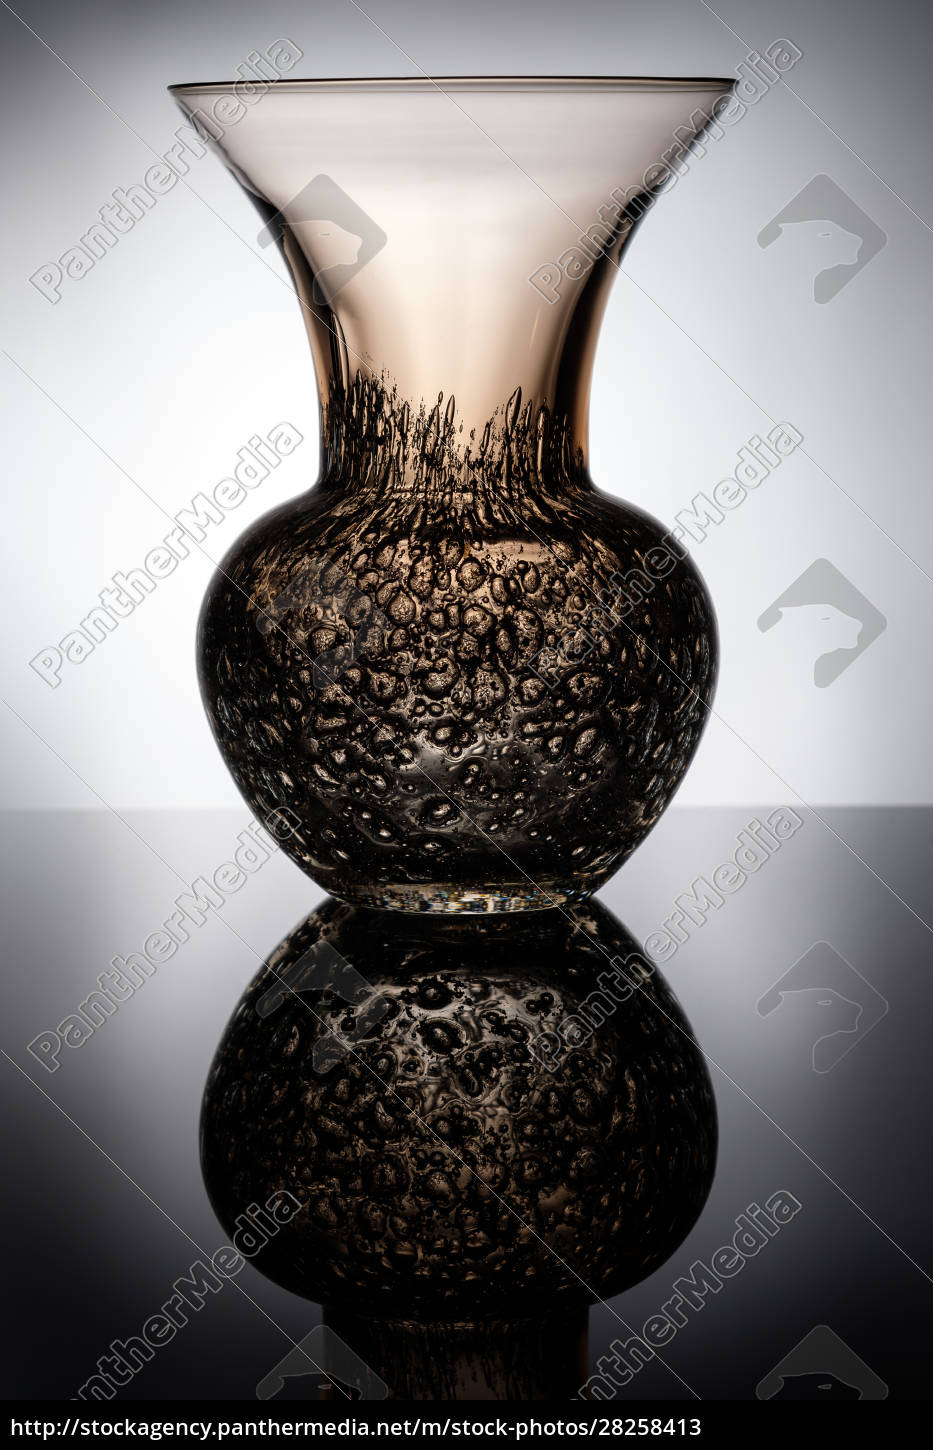 glass, vase, with, bubbles, in, back - 28258413